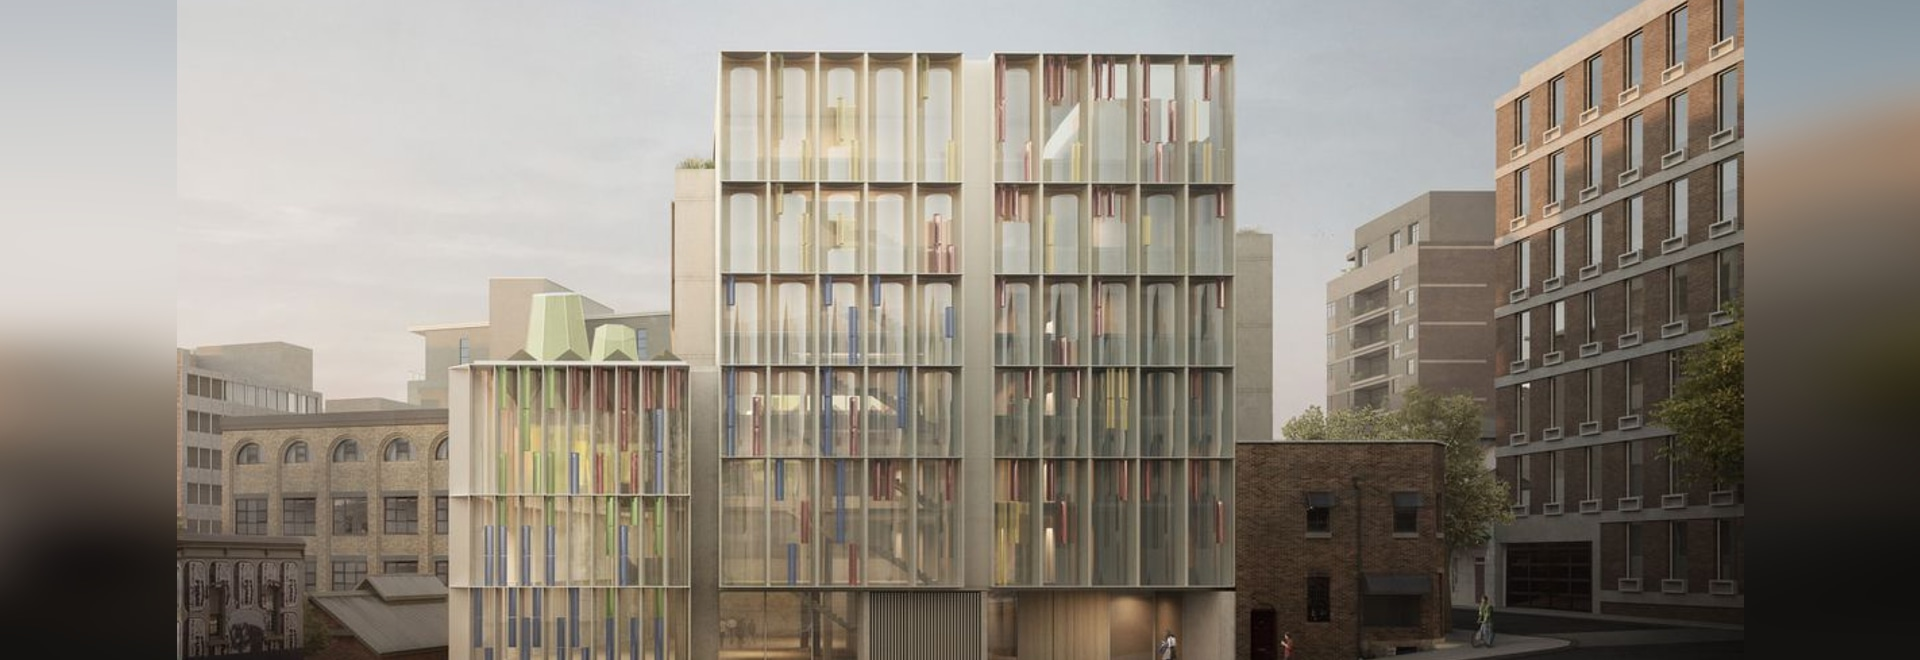 The Candalepas Associates project at 72-84 Foveaux Street will see an existing a 1970s six-storey brick office and retail building adapted into a refurbished office space.